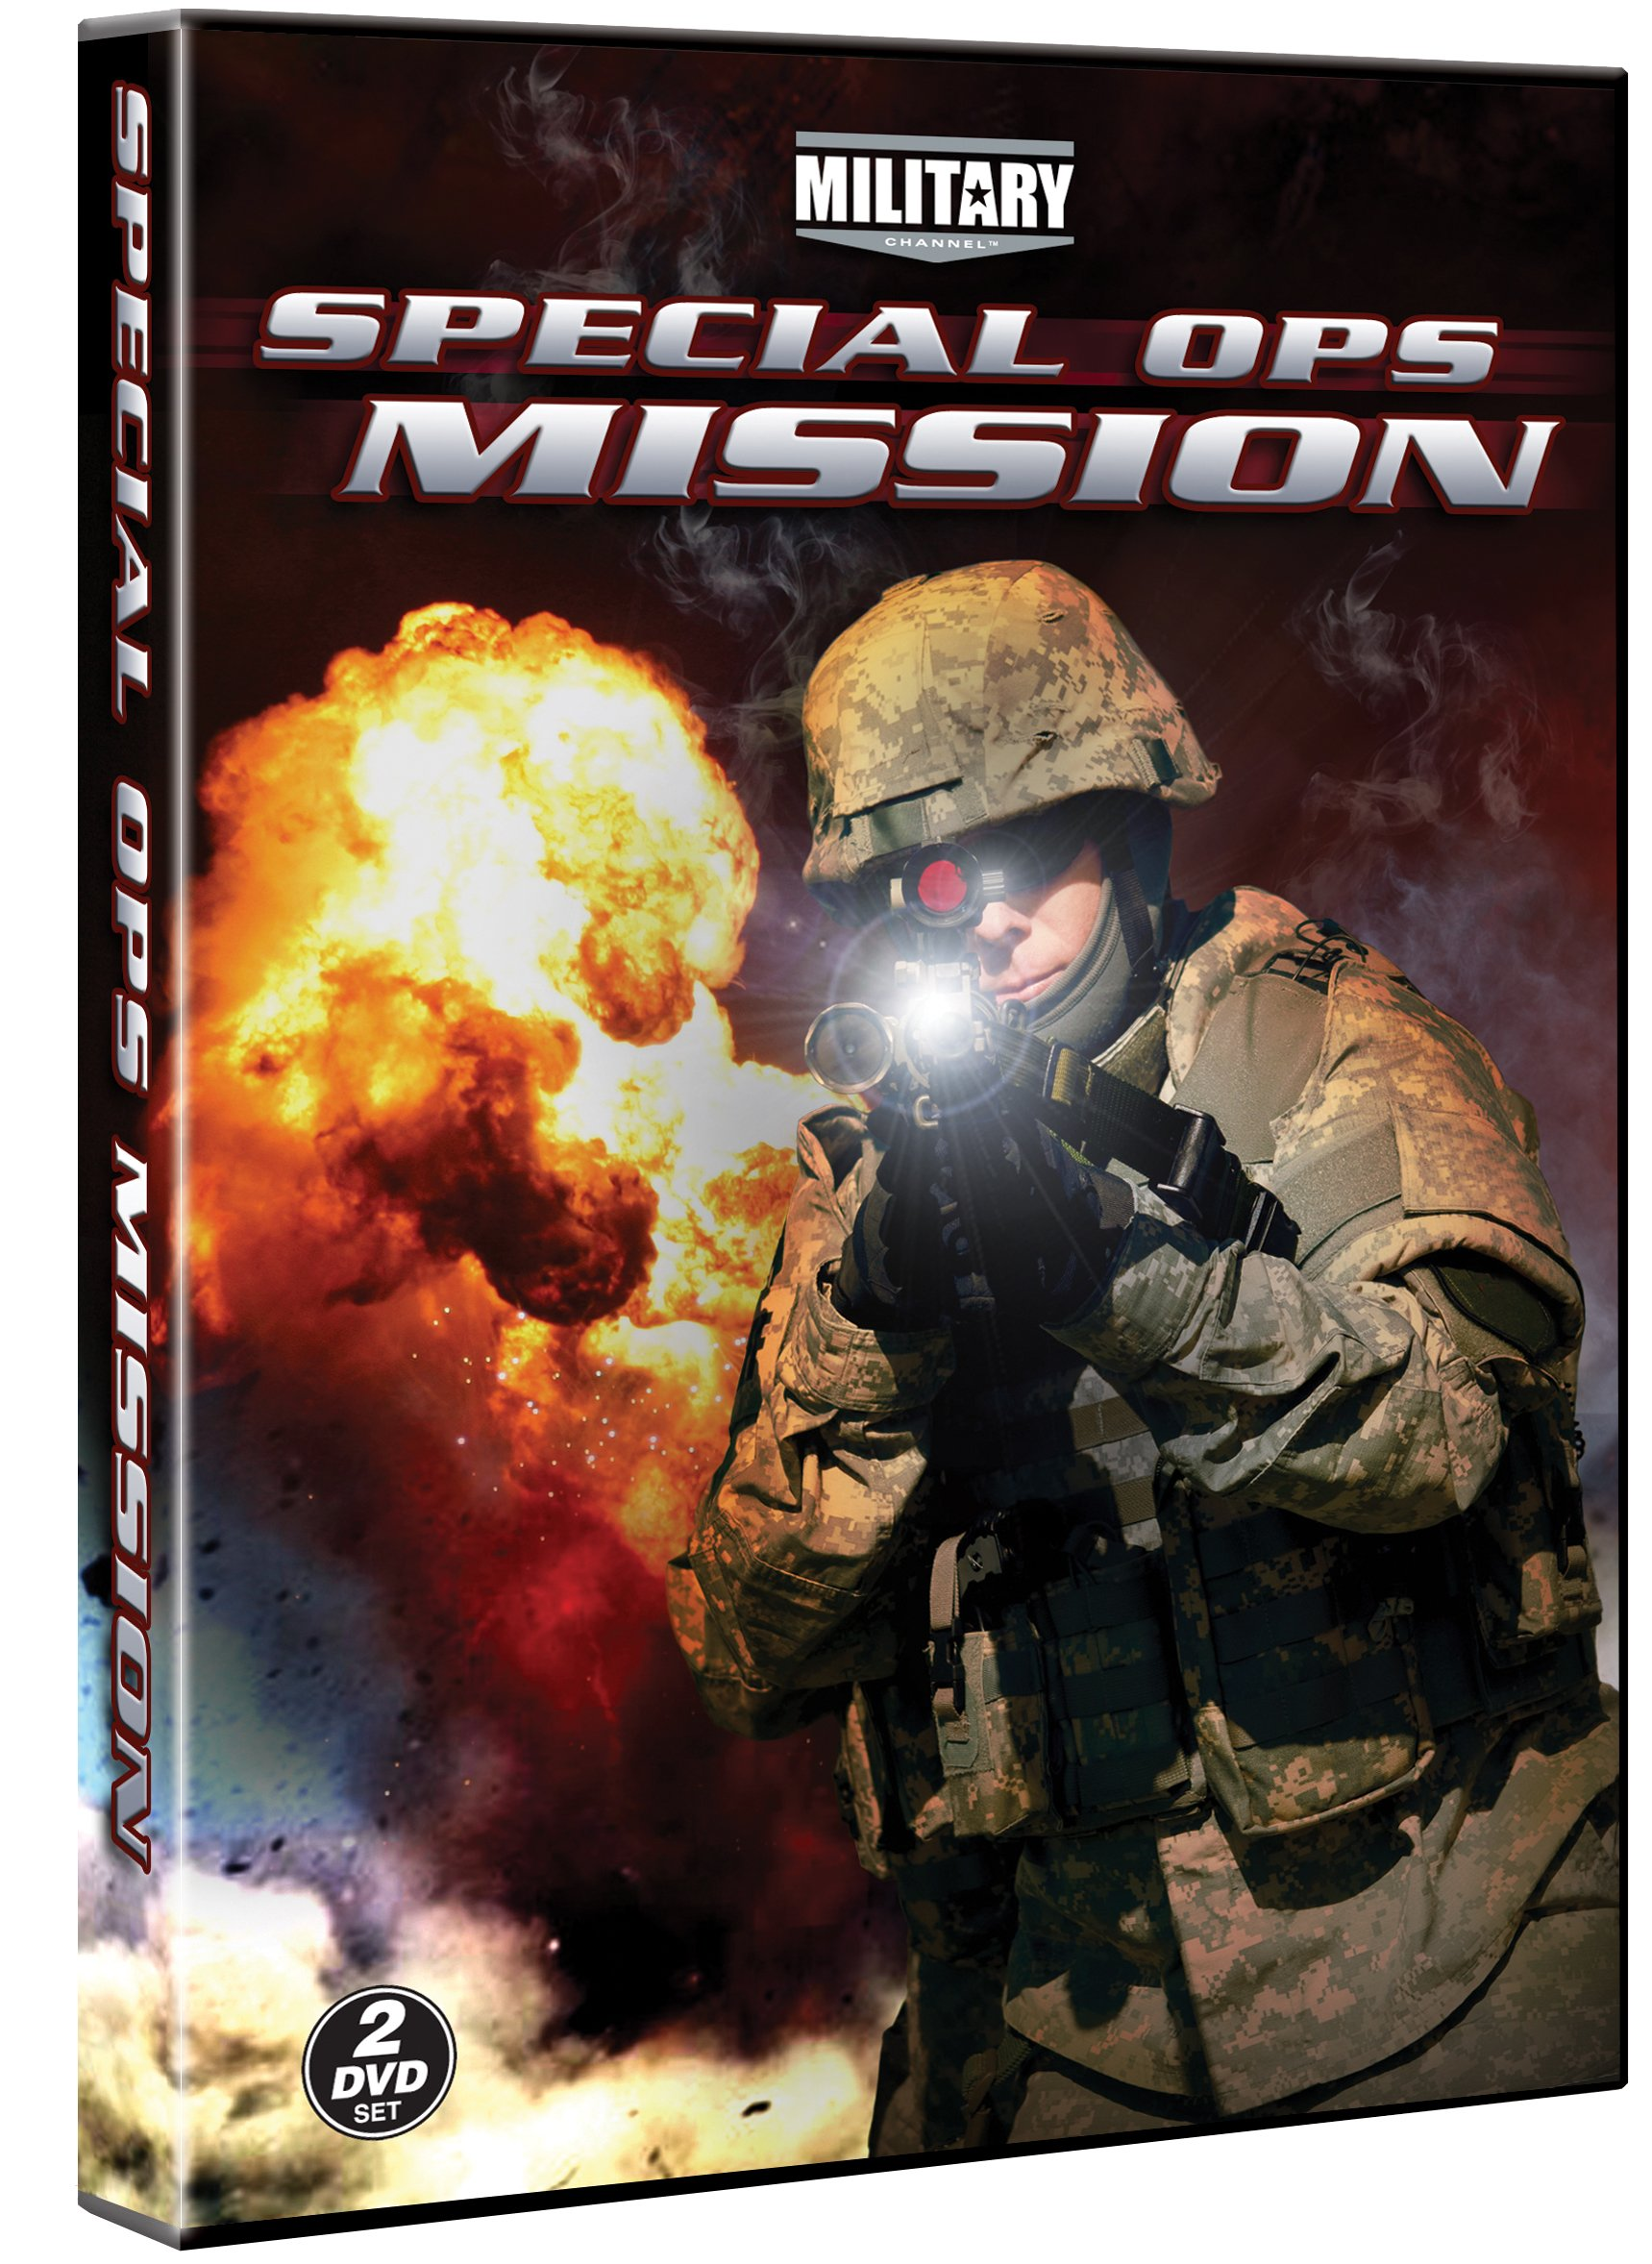 Special Ops Mission